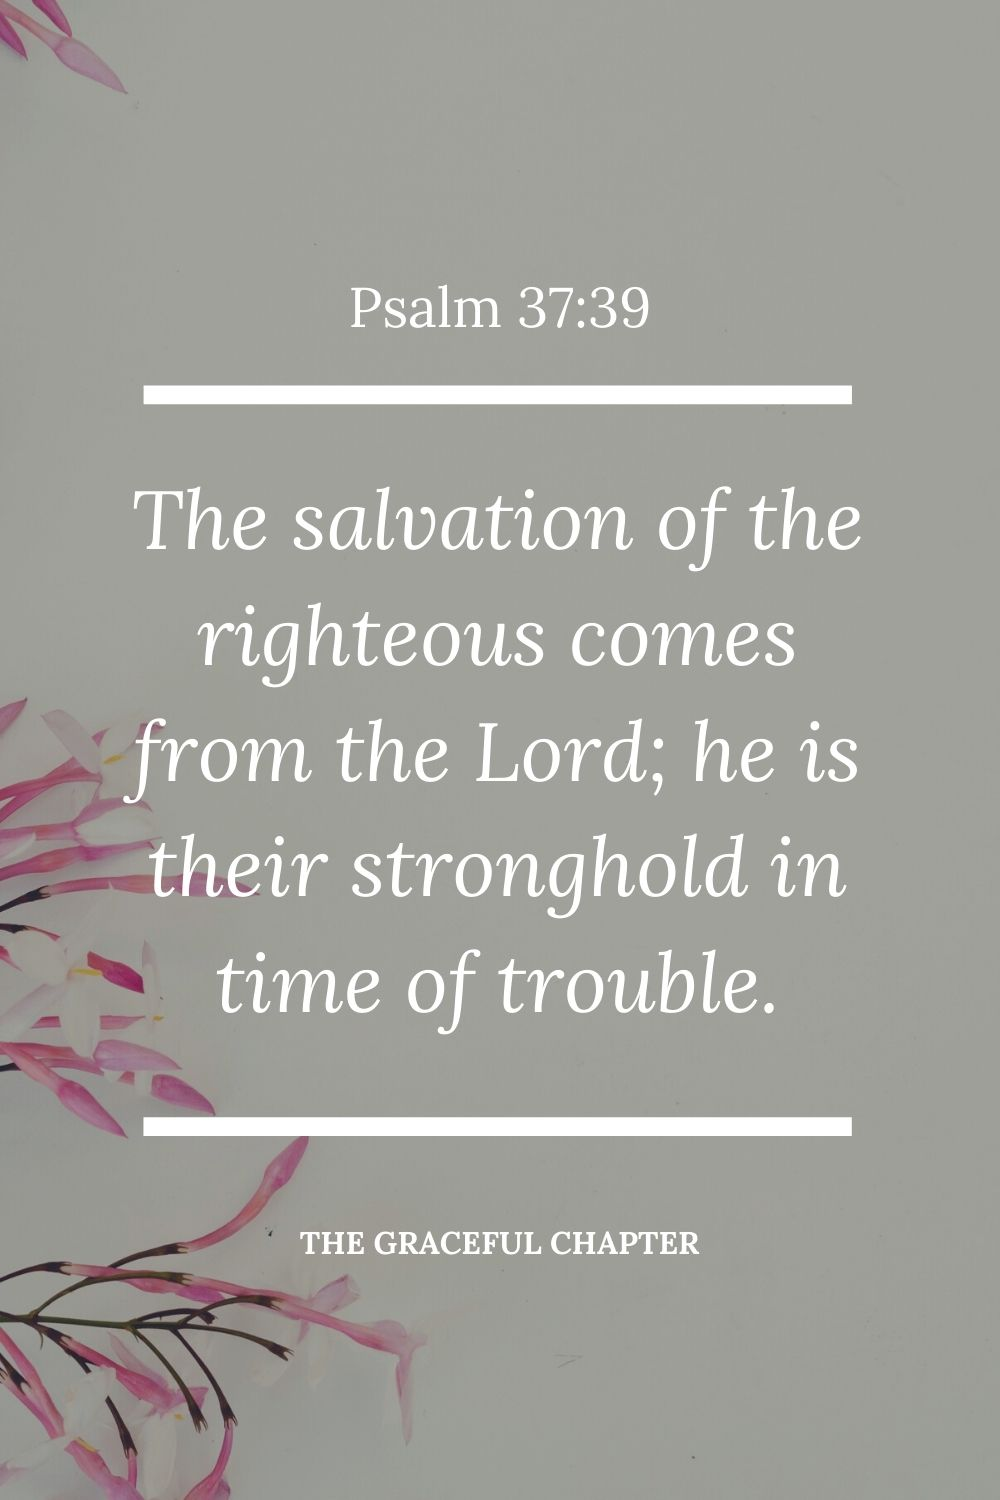 The salvation of the righteous comes from the Lord; he is their stronghold in time of trouble. Psalm 37:39